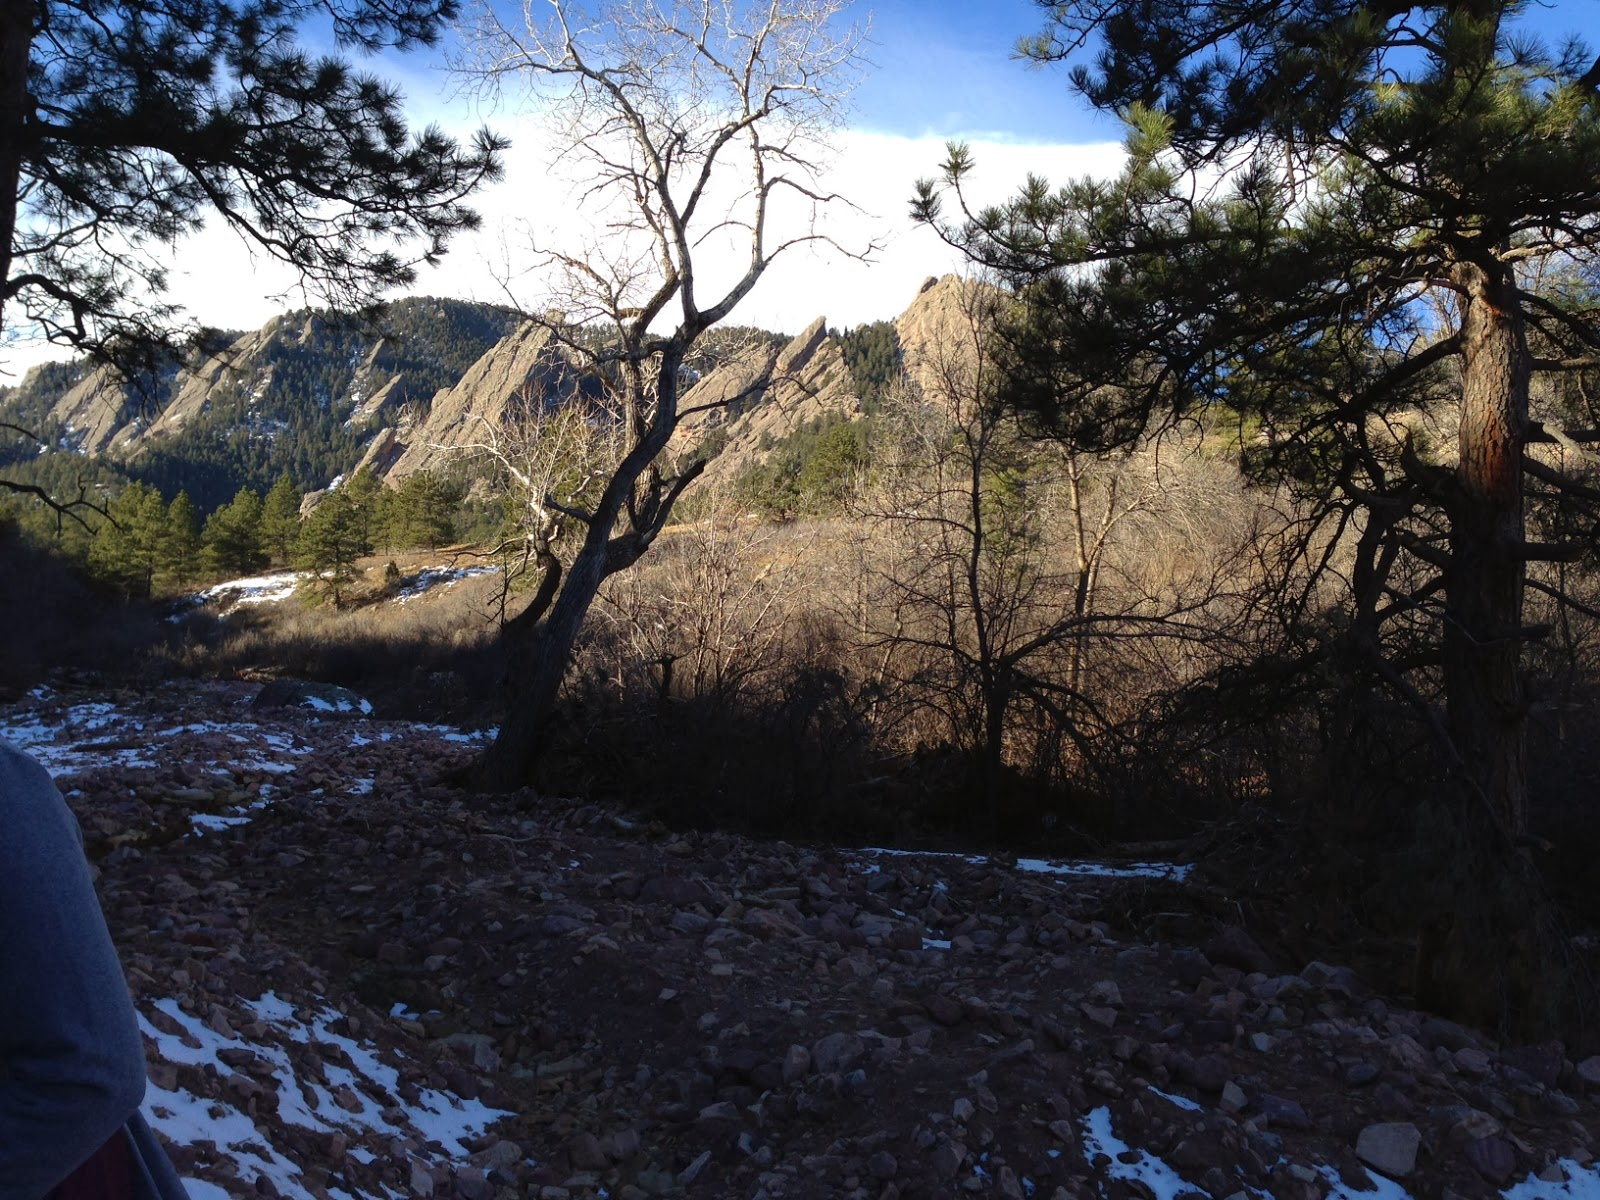 The breathtaking view of the Flatirons from the historic Chataqua trails in Boulder, Colorado